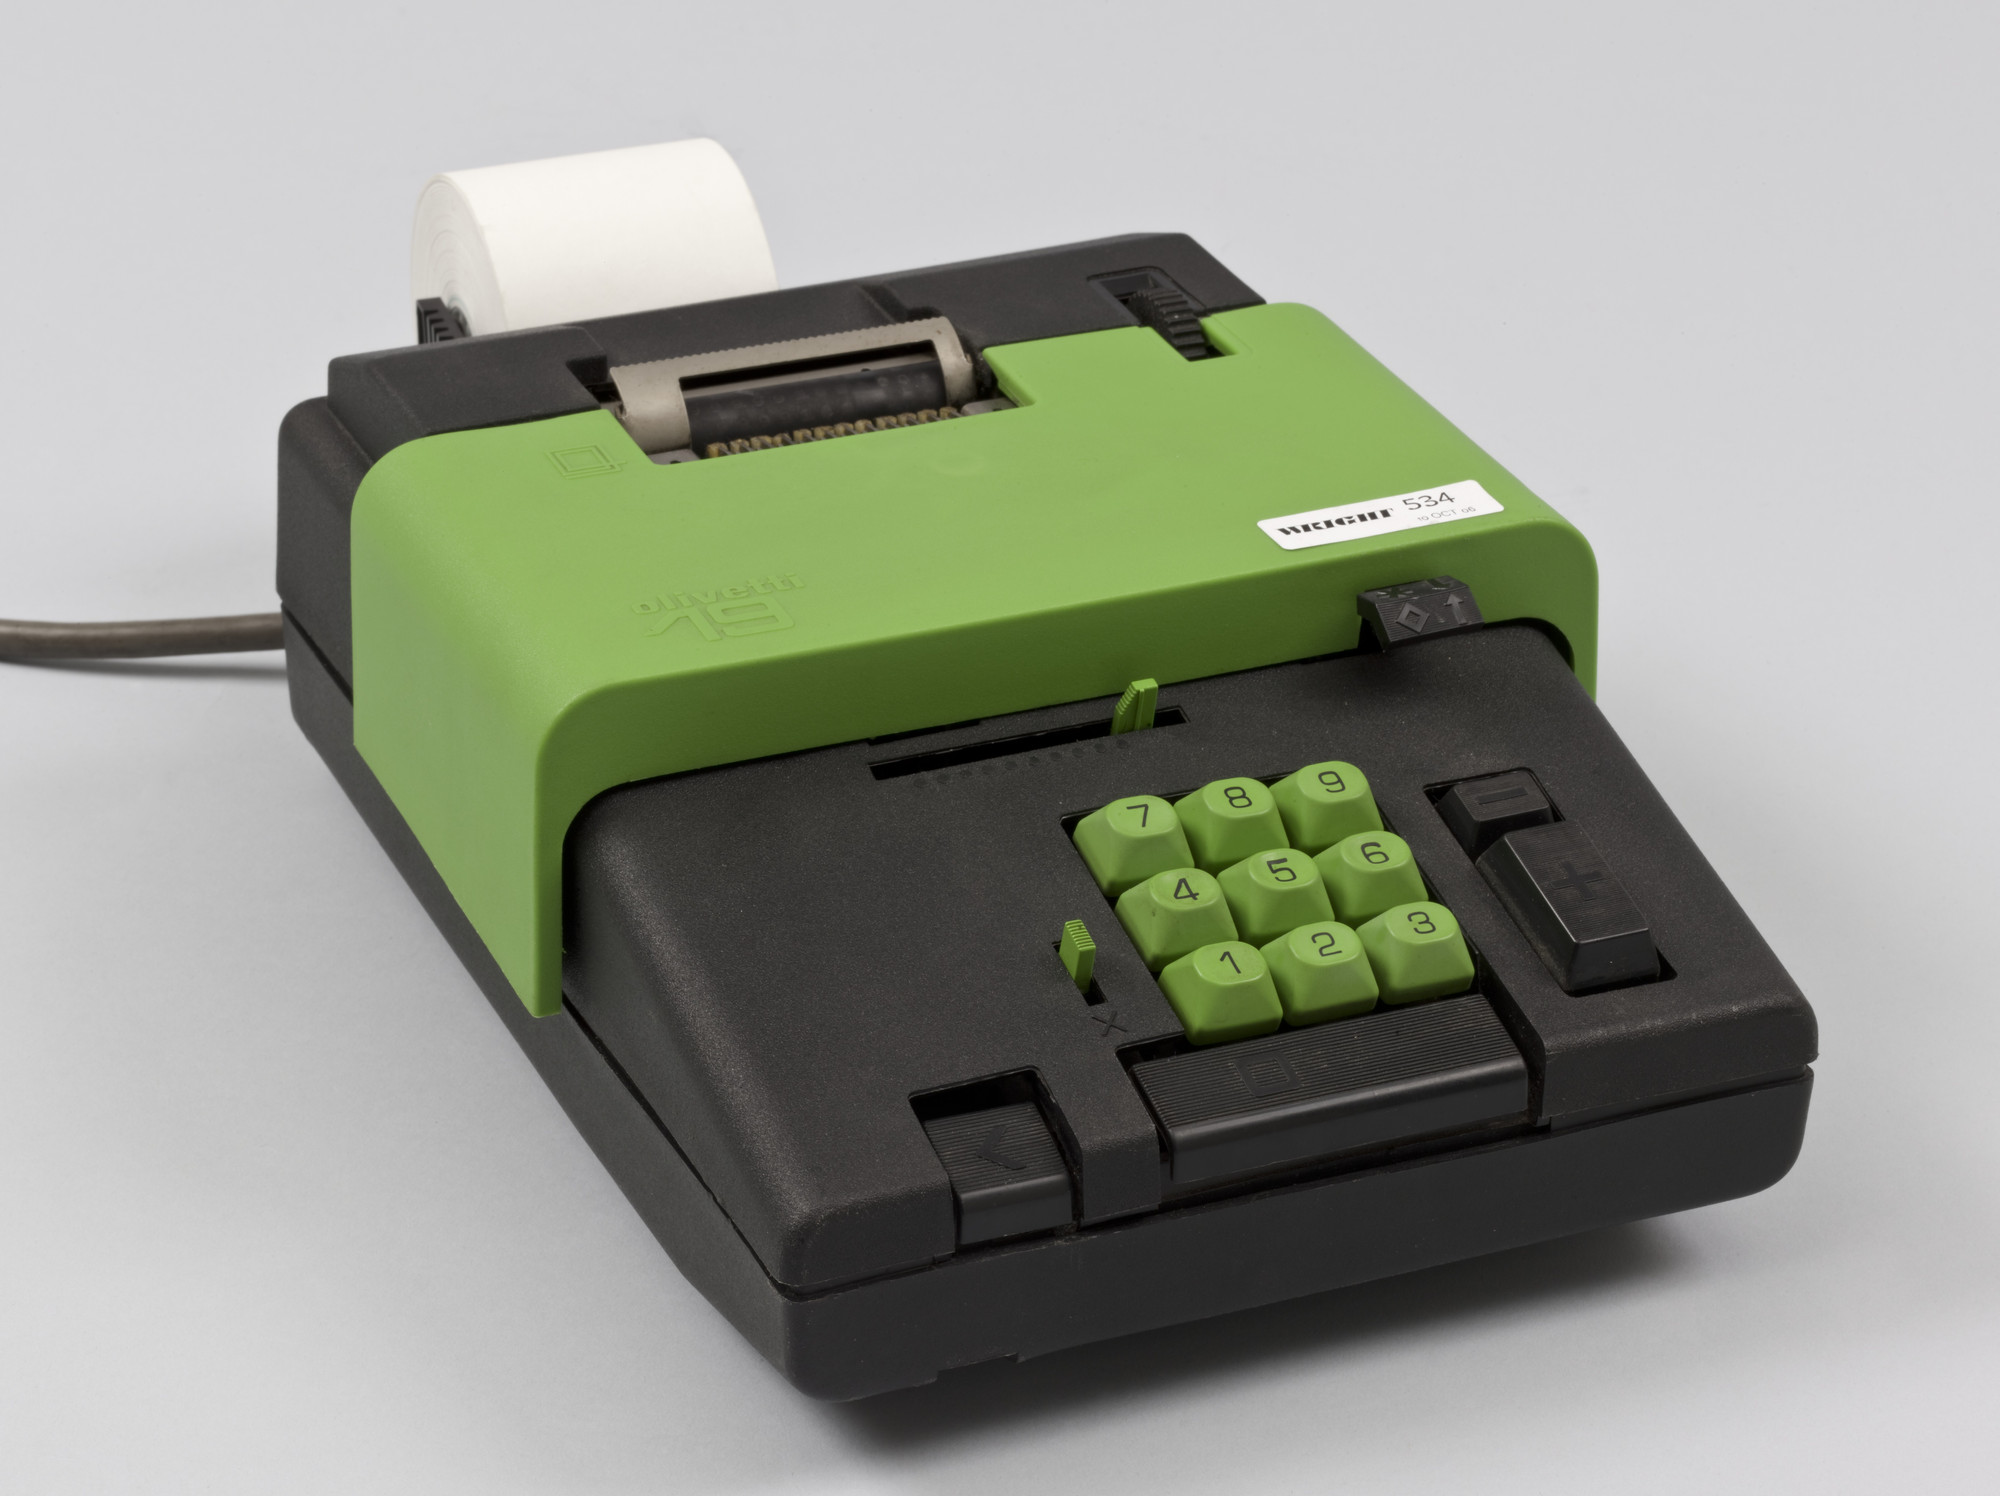 Ettore Sottsass. Summa 19 Calculator. 1970